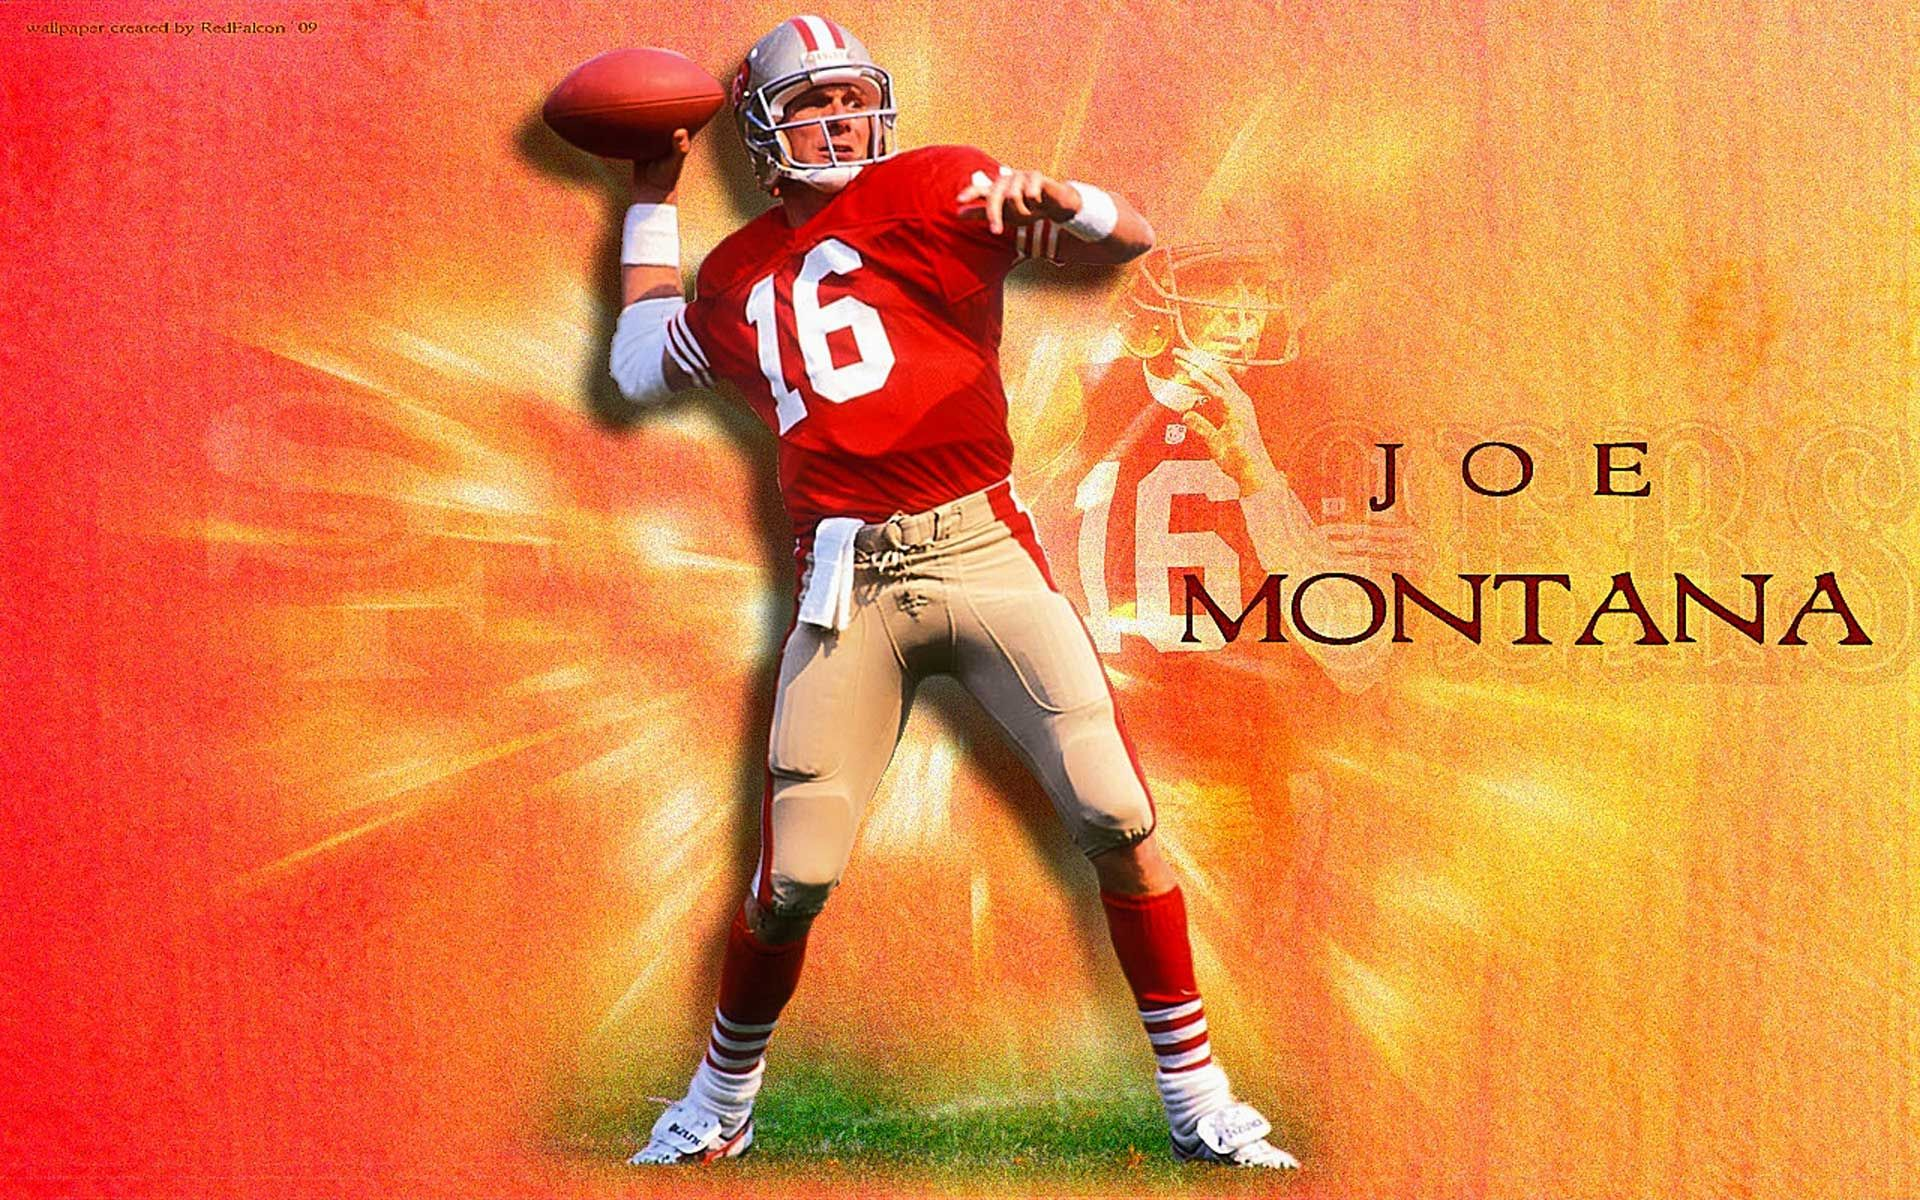 Google Image Result For Http Freefootballwallpapers Com Wallpapers Joe Montana Wallpaper Jpg Joe Montana San Francisco 49ers San Francisco 49ers Football